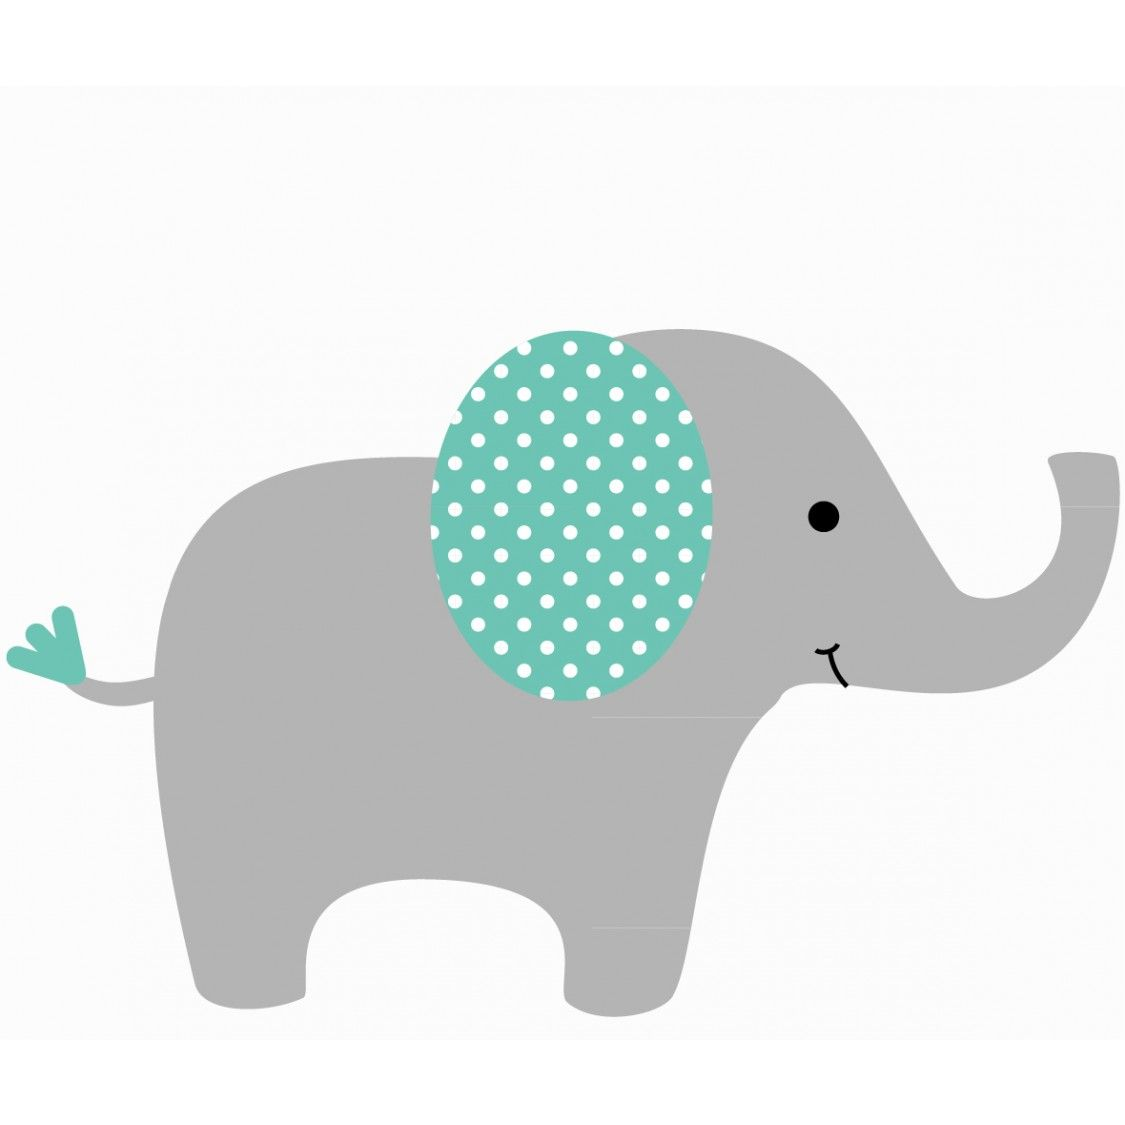 Baby shower elephant clipart clip art freeuse library Image result for elephant silhouette baby shower | art elephant ... clip art freeuse library